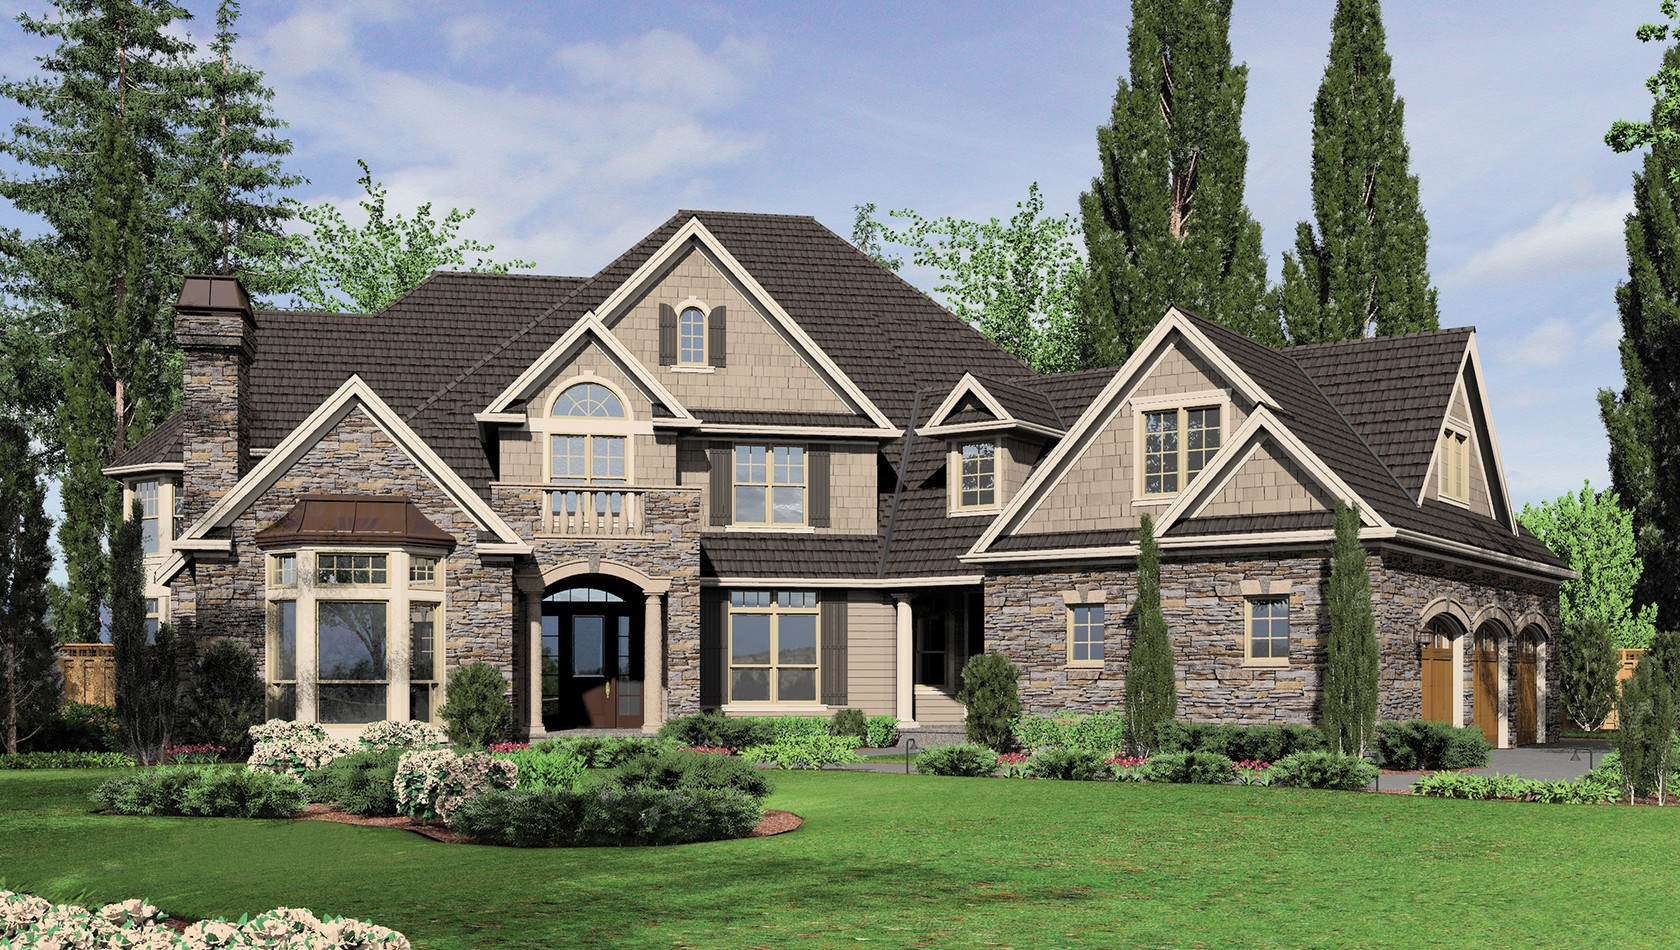 European House Plan 2449 The Hallsville 6775 Sqft 5 Beds 5 1 Baths